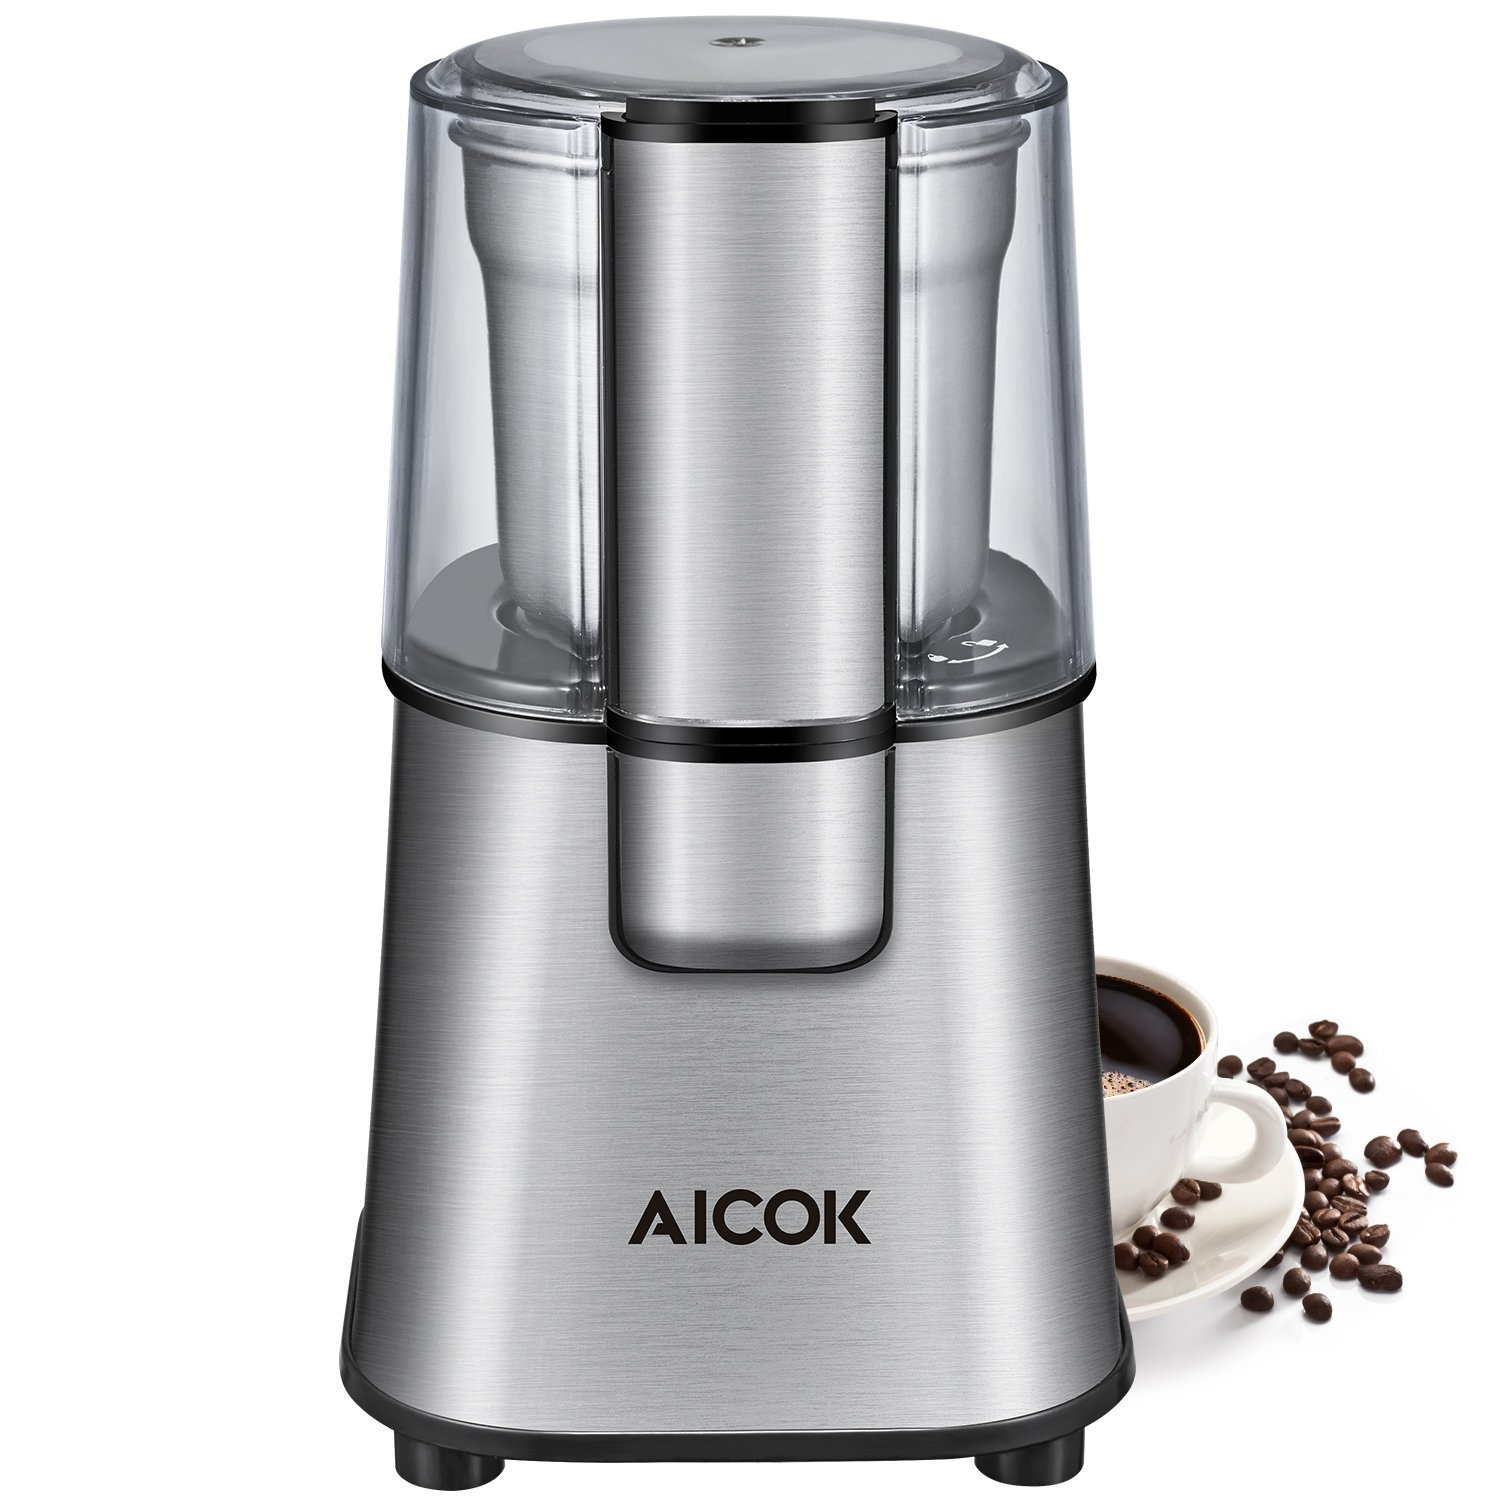 Aicok Coffee Grinder Electric Fast and Fine Fineness Coffee Blade Grinder with Removal Coffee Powder Bowl Stainless Steel Motor Base 200W for Most Efficient Grinding 2-Year Warranty